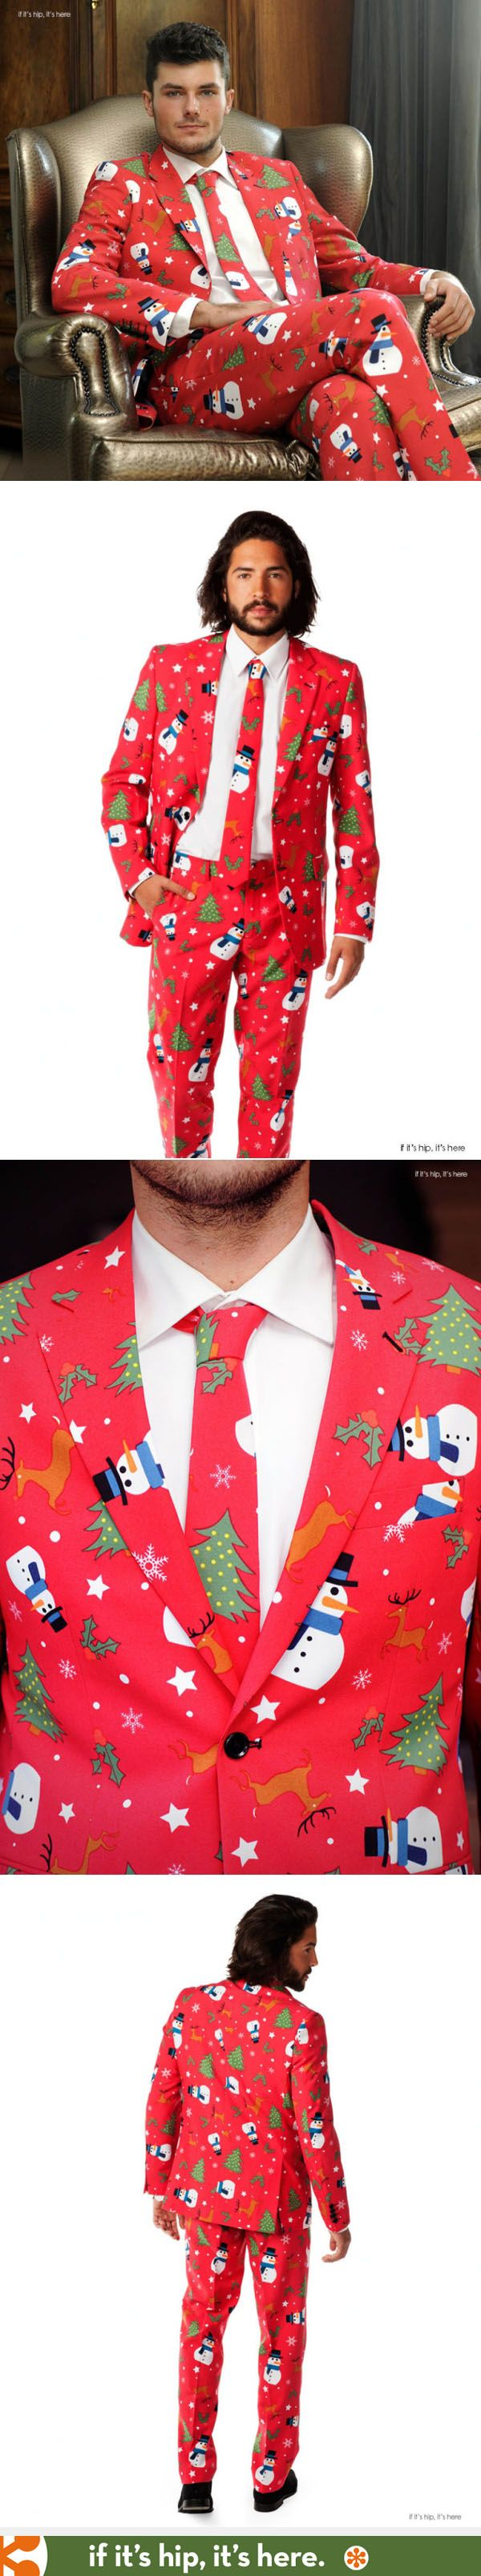 The Christmaster suit by Opposuits | http://www.ifitshipitshere.com/ugly-christmas-suits-fabulously-festive/